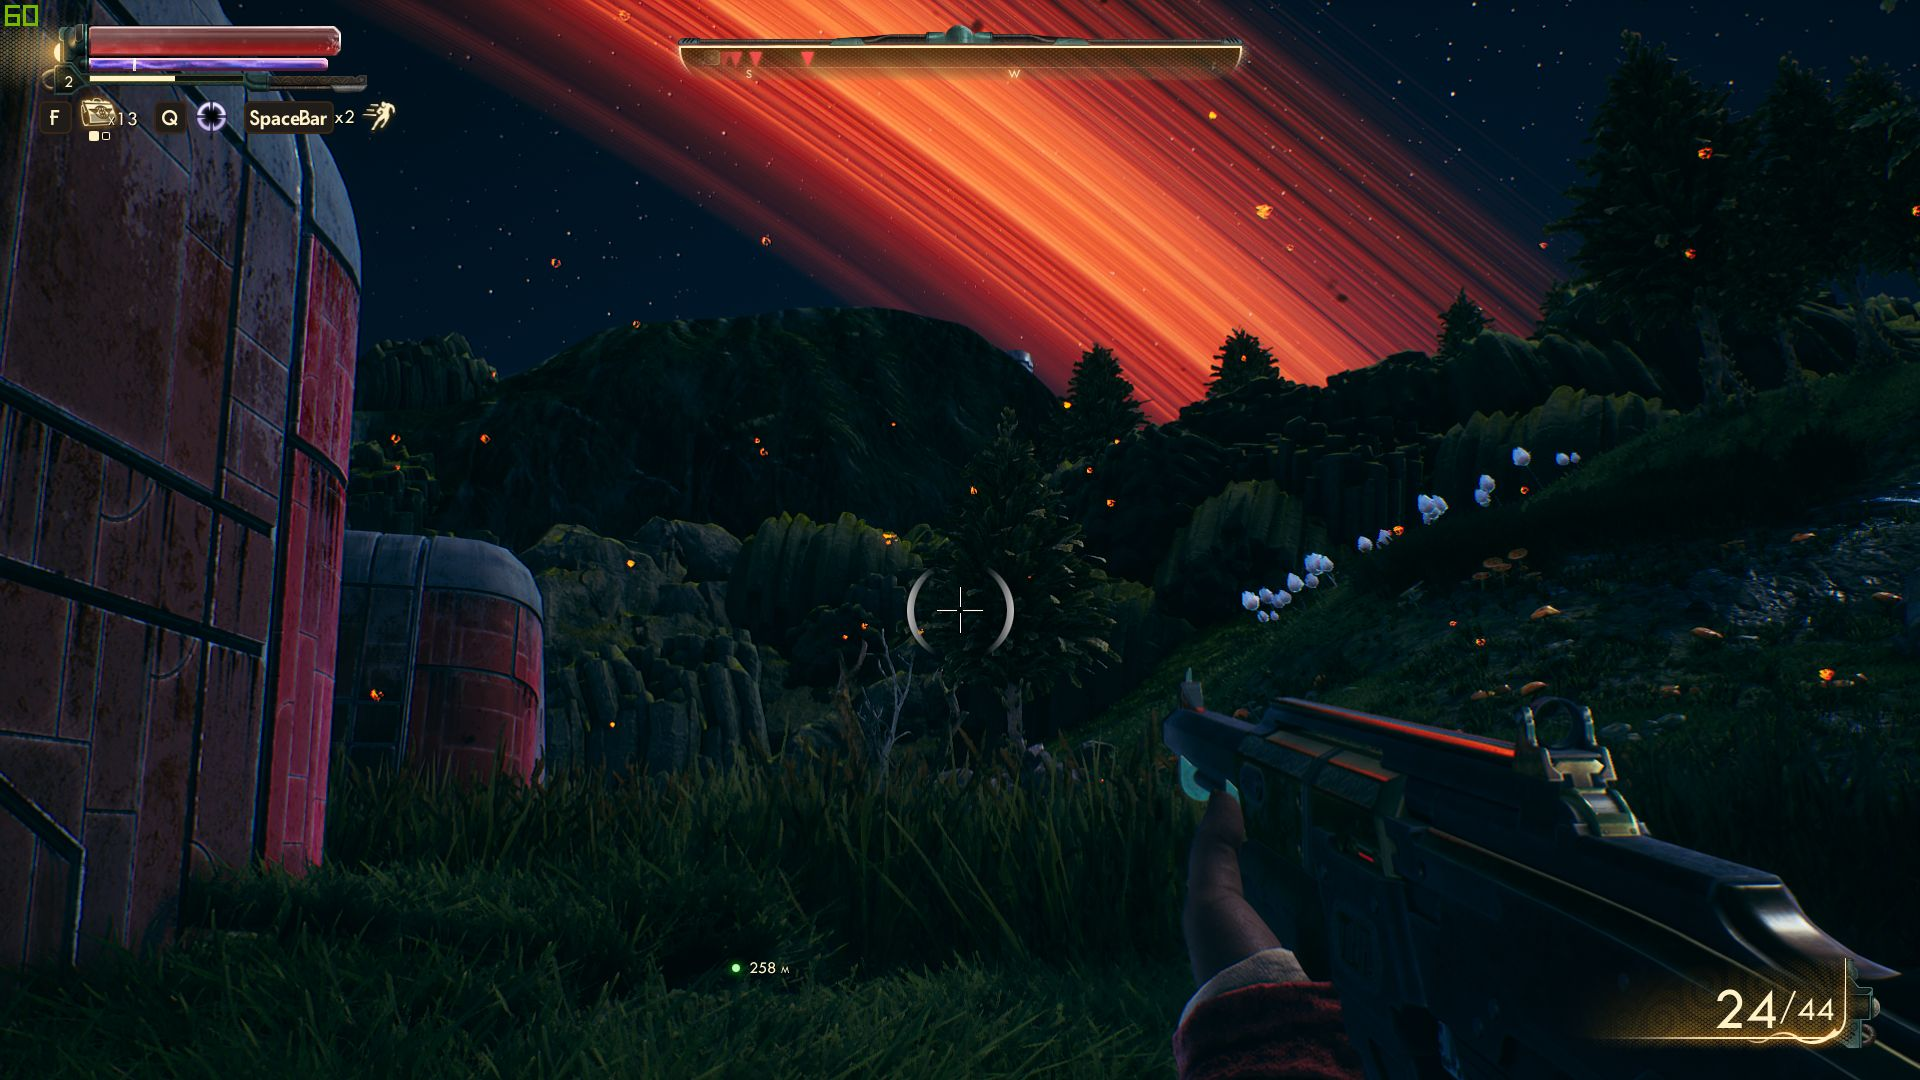 00040.Jpg - Outer Worlds, the